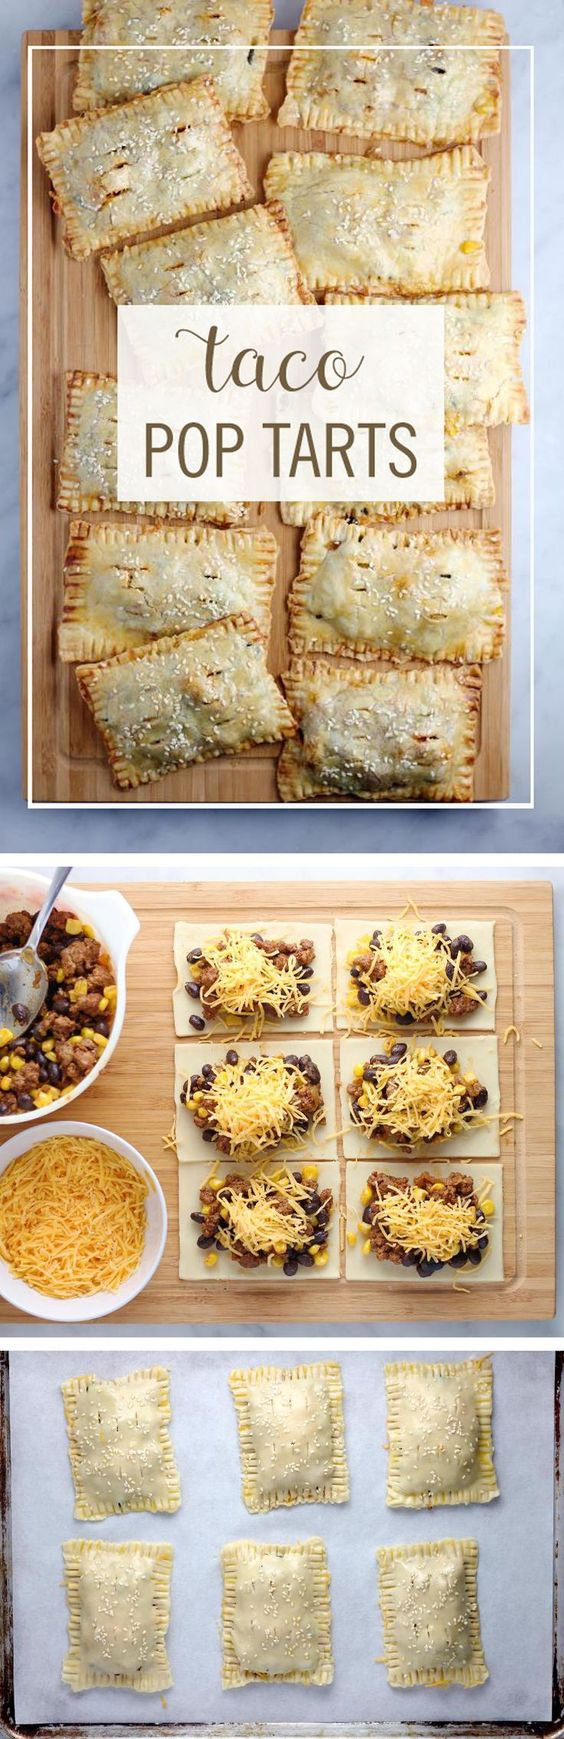 "Taco Pop Tarts Recipe via Babble ""These Taco Pop Tarts are a perfect way to turn your favorite breakfast pastry into dinner. Take your typical taco ingredients and turn them into this delicious on-the-go dinner."" - The BEST 30 Minute Meals Recipes - Easy, Quick and Delicious Family Friendly Lunch and Dinner Ideas #30minutemeals #30minutedinners #thirtyminutedinners #30minuterecipes #fastrecipes #easyrecipes #quickrecipes #mealprep"